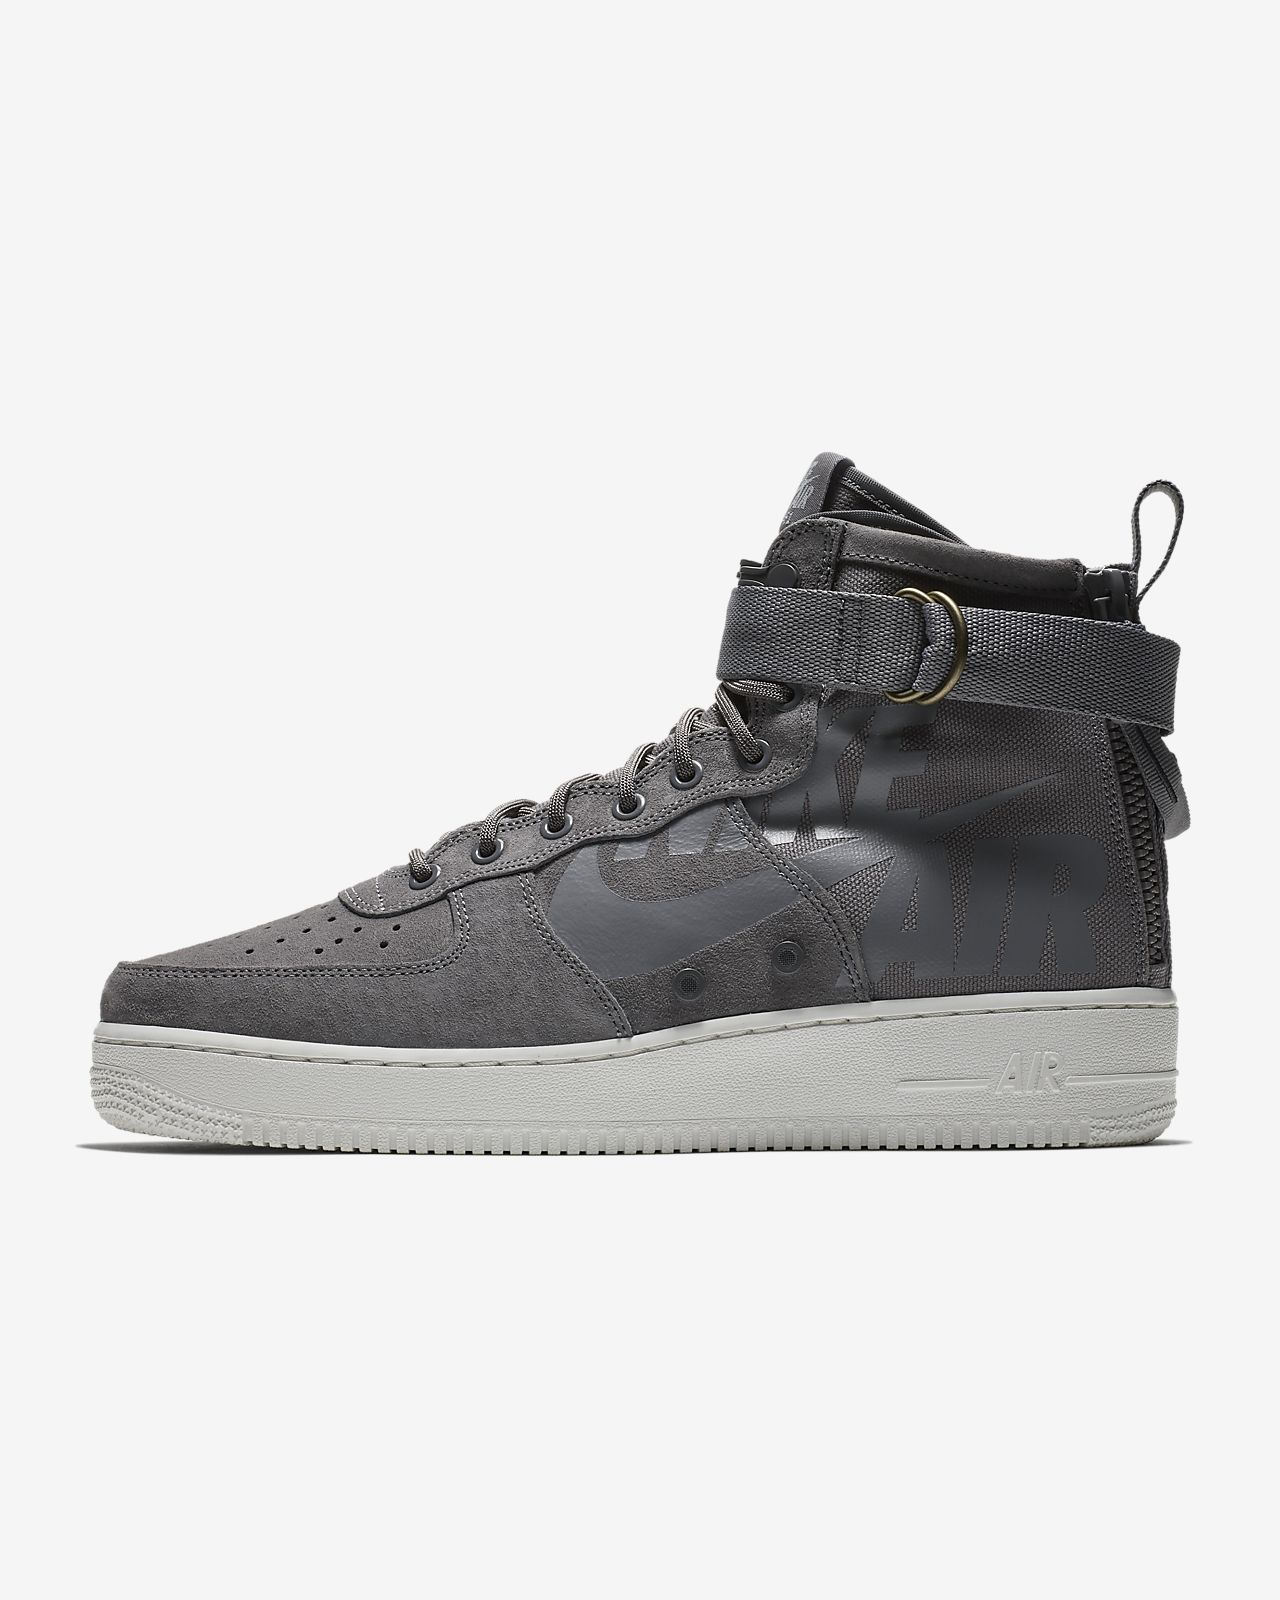 Nike Air Force 1 Mid men's Casual Shoe